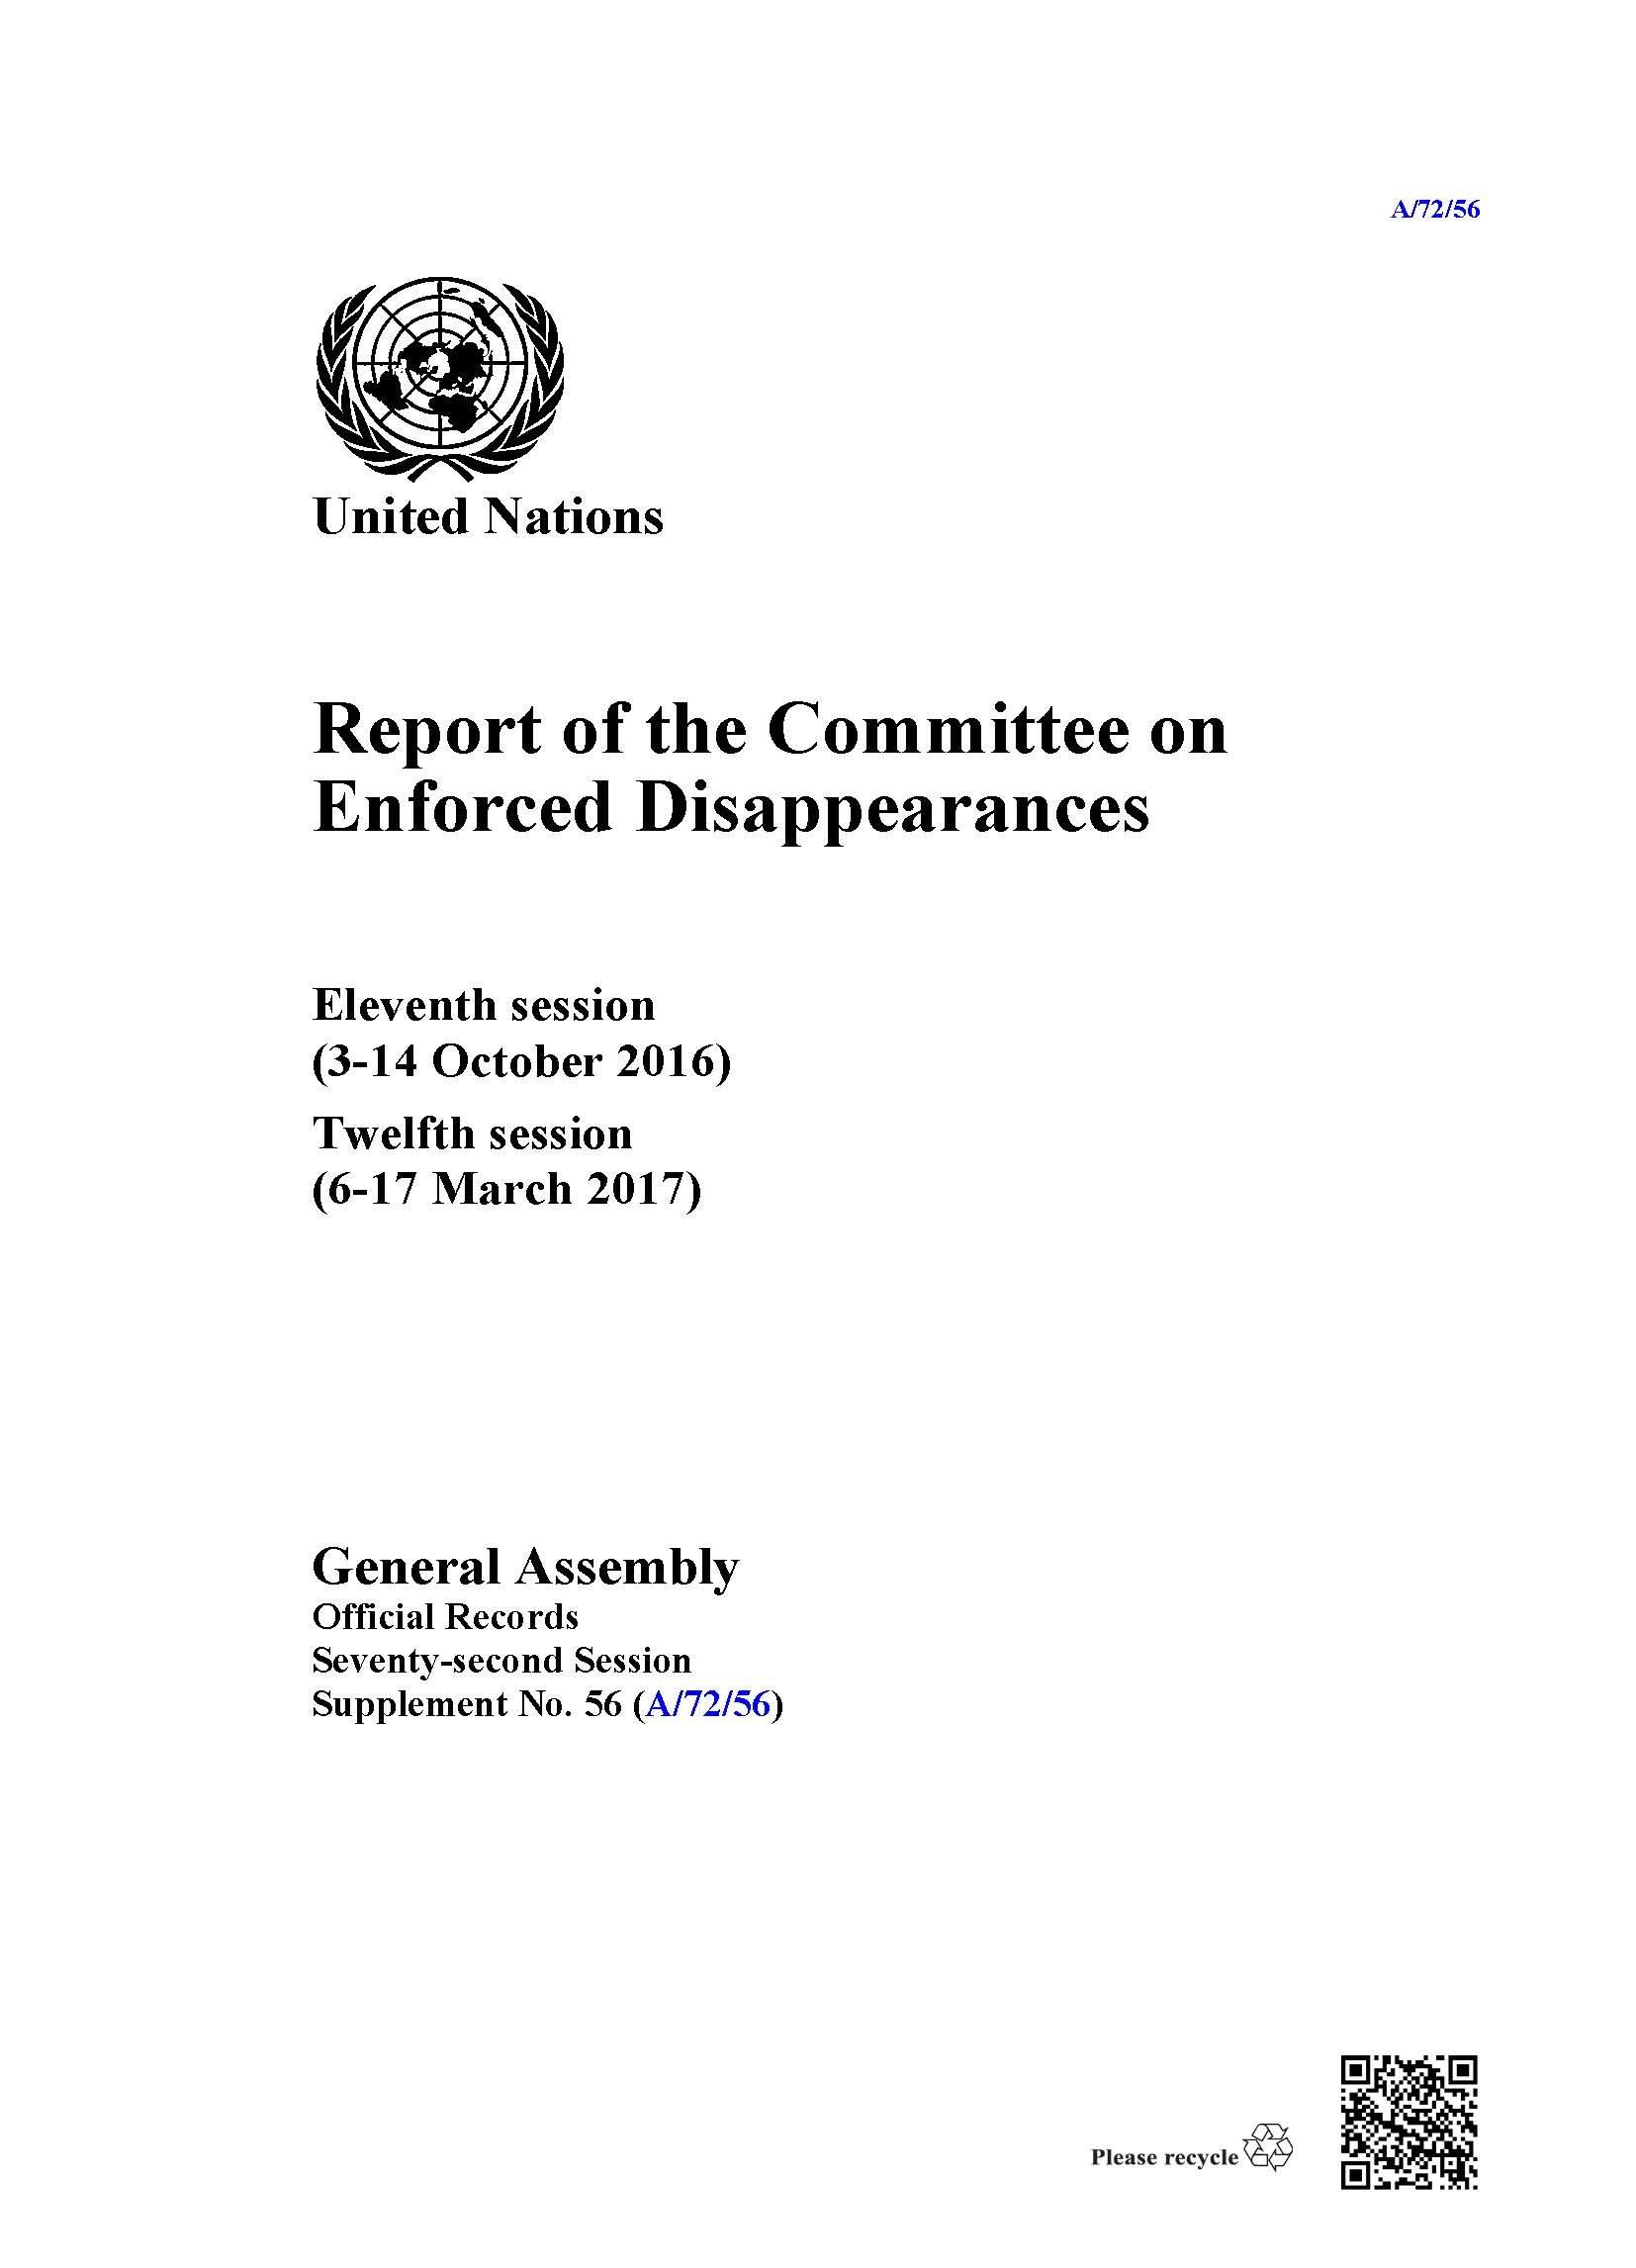 Report of the Committee on Enforced Disappearances: Eleventh session (3-14 October 2016) Twelfth session (6-17 March 2017) pdf epub